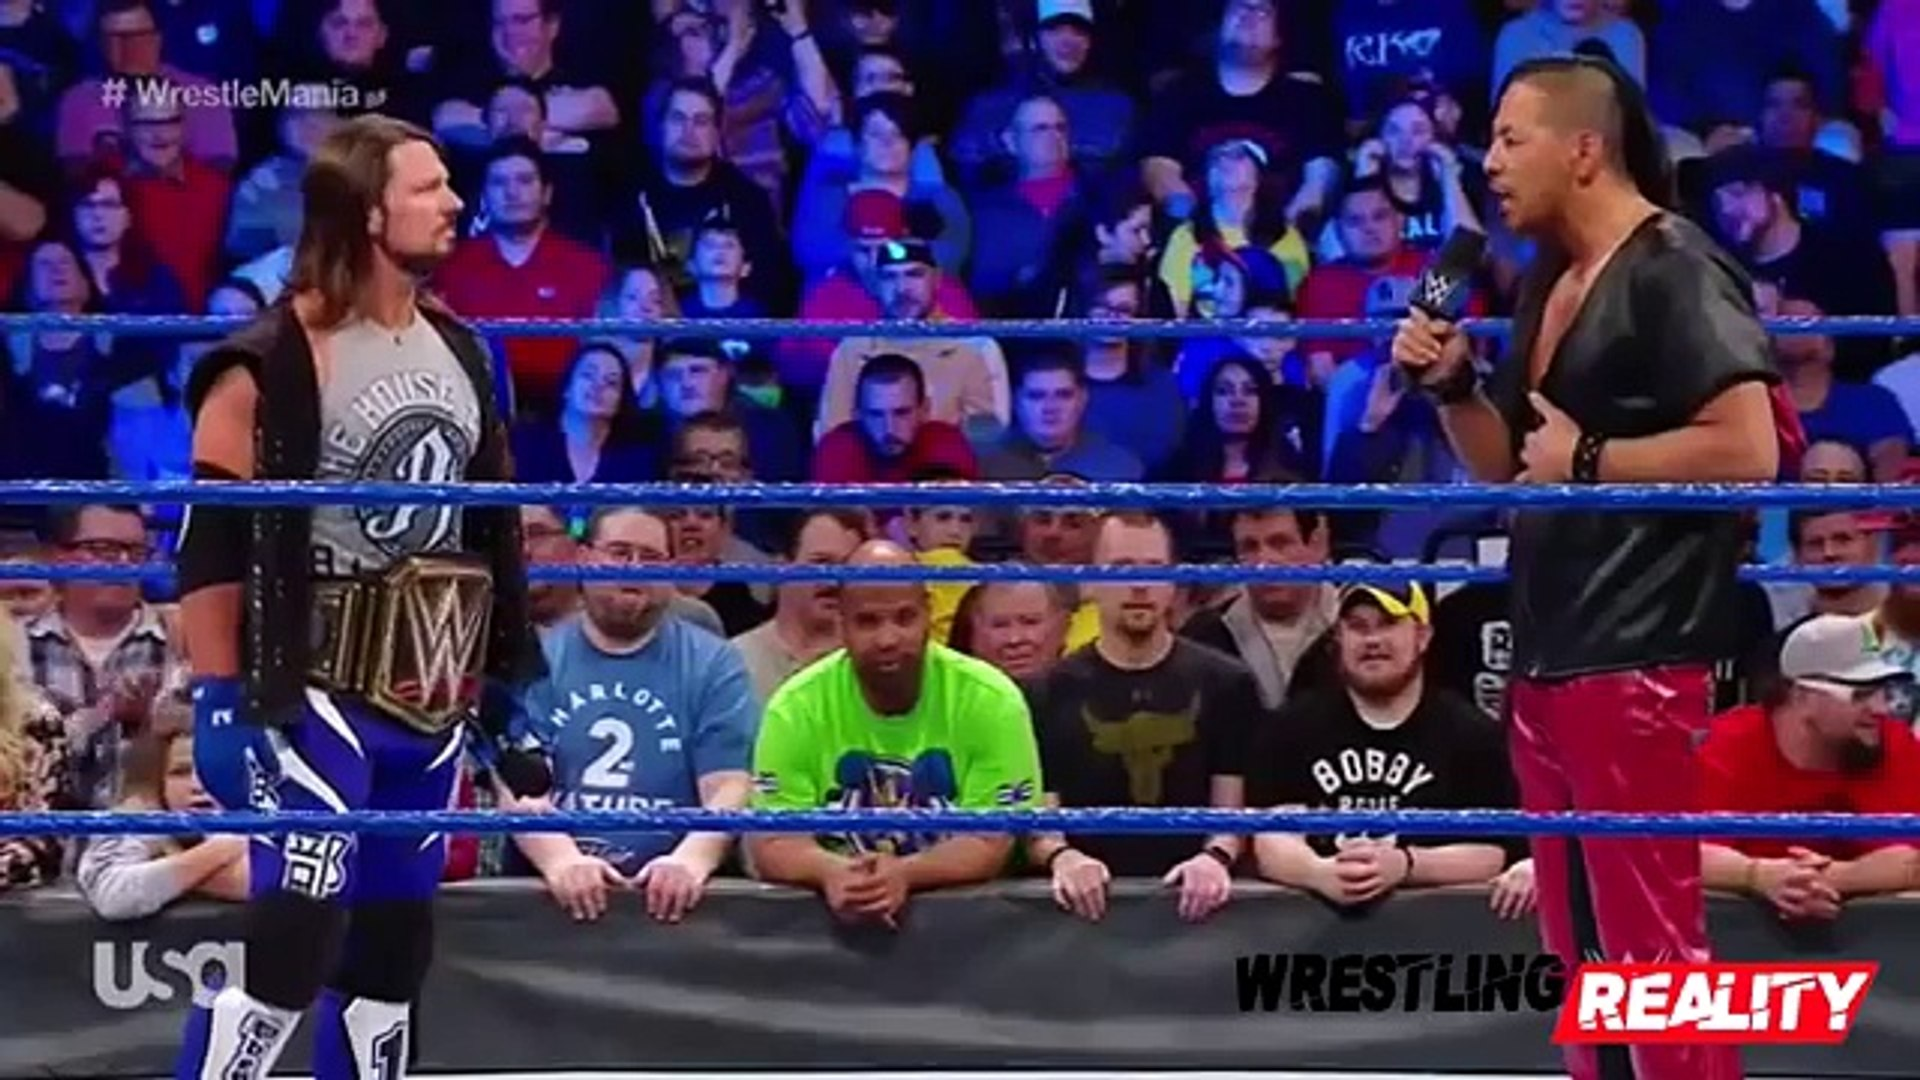 WWE Smackdown 13 March Highlights HD - WWE Smackdown 13/3/187 Highlights HD,WWE Smackdown 13 March H